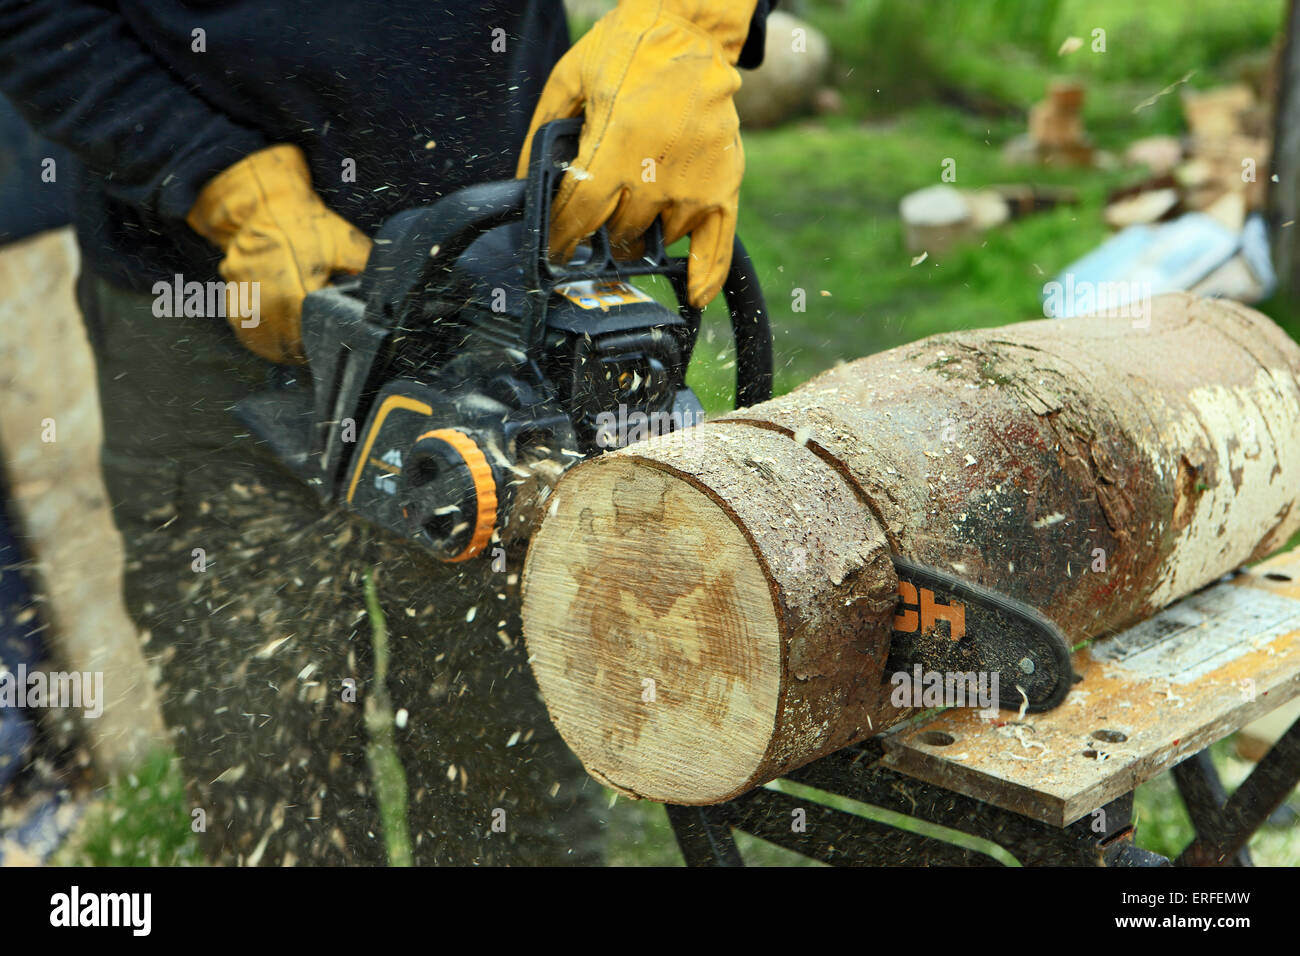 how to cut down a tree using a chainsaw